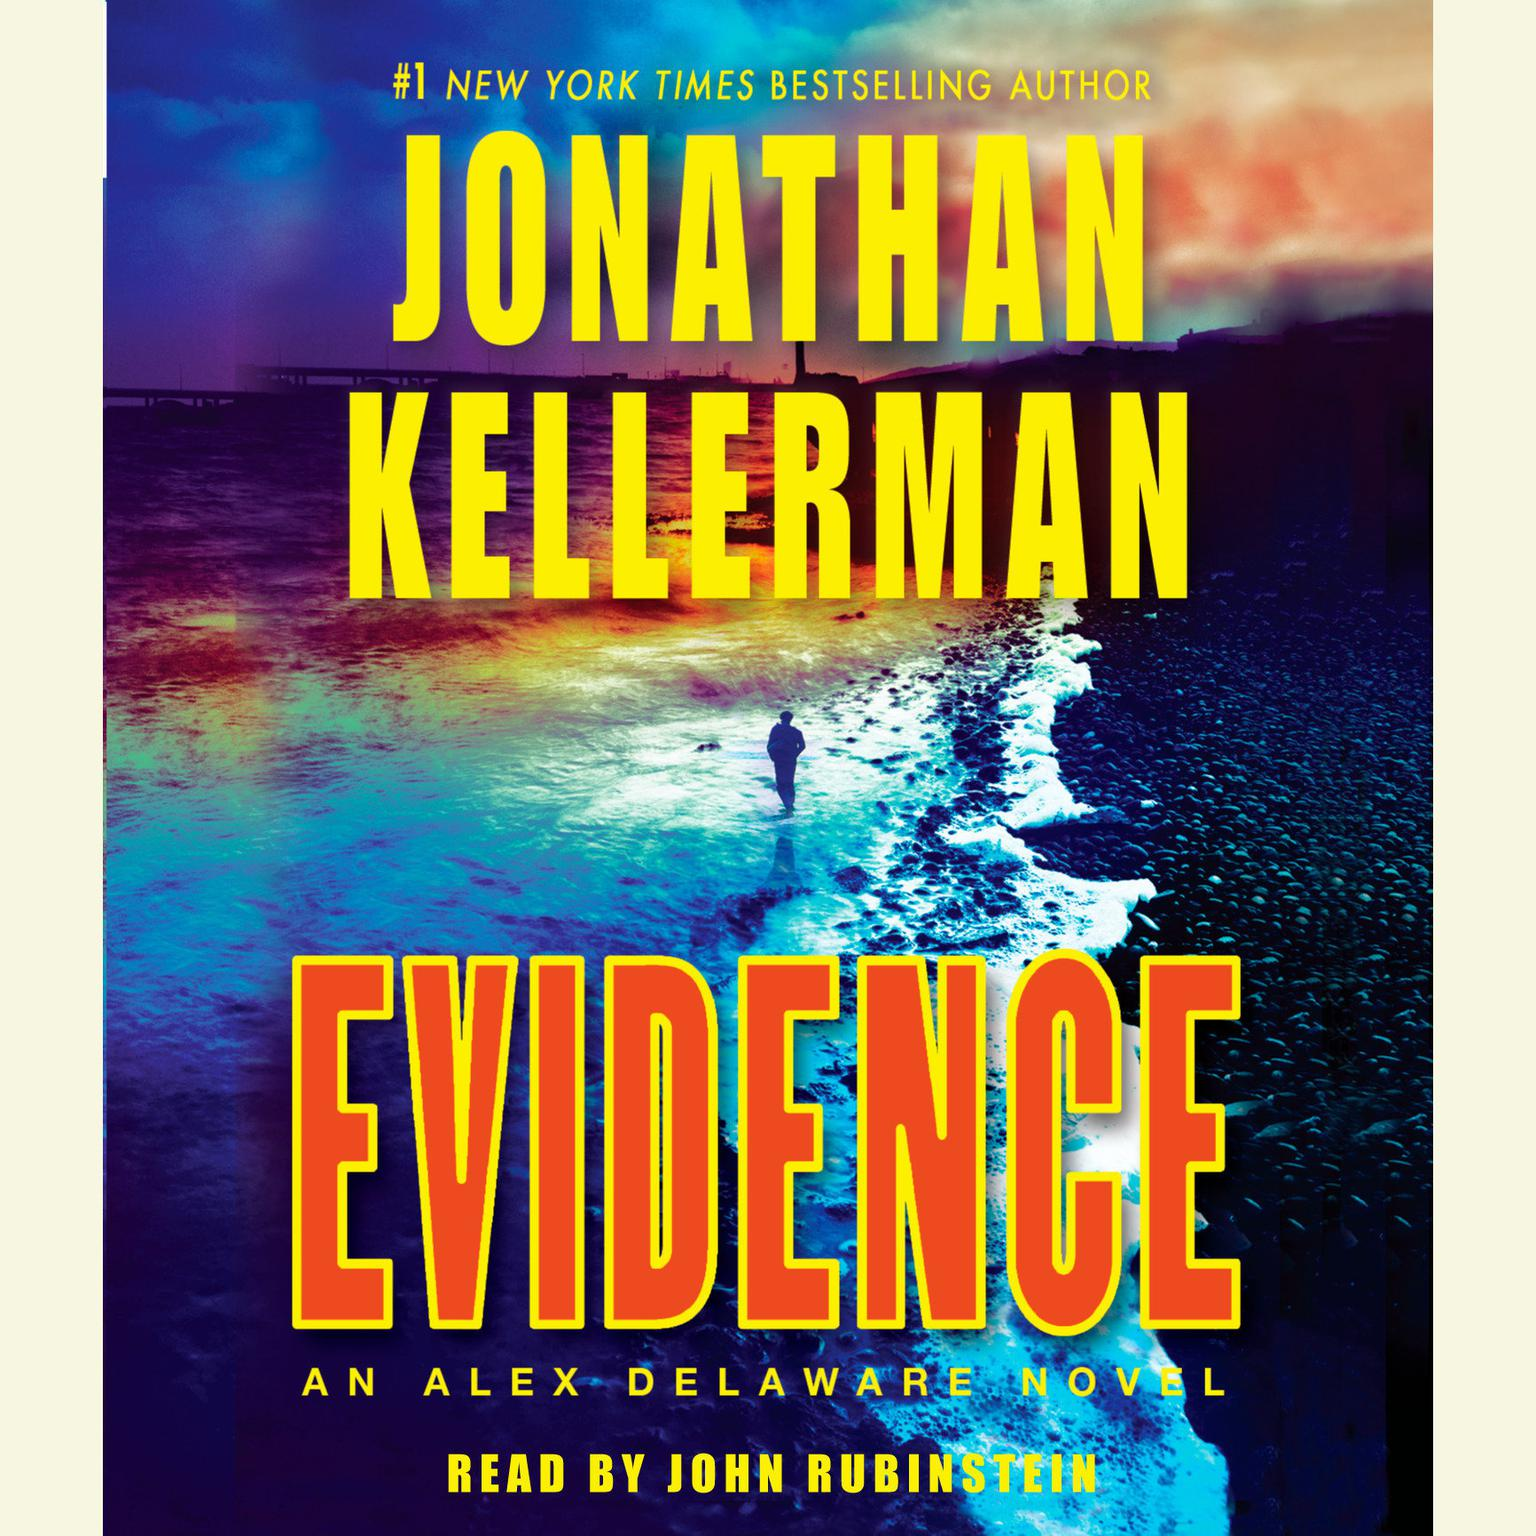 Download Evidence (abridged) Audiobook By Jonathan